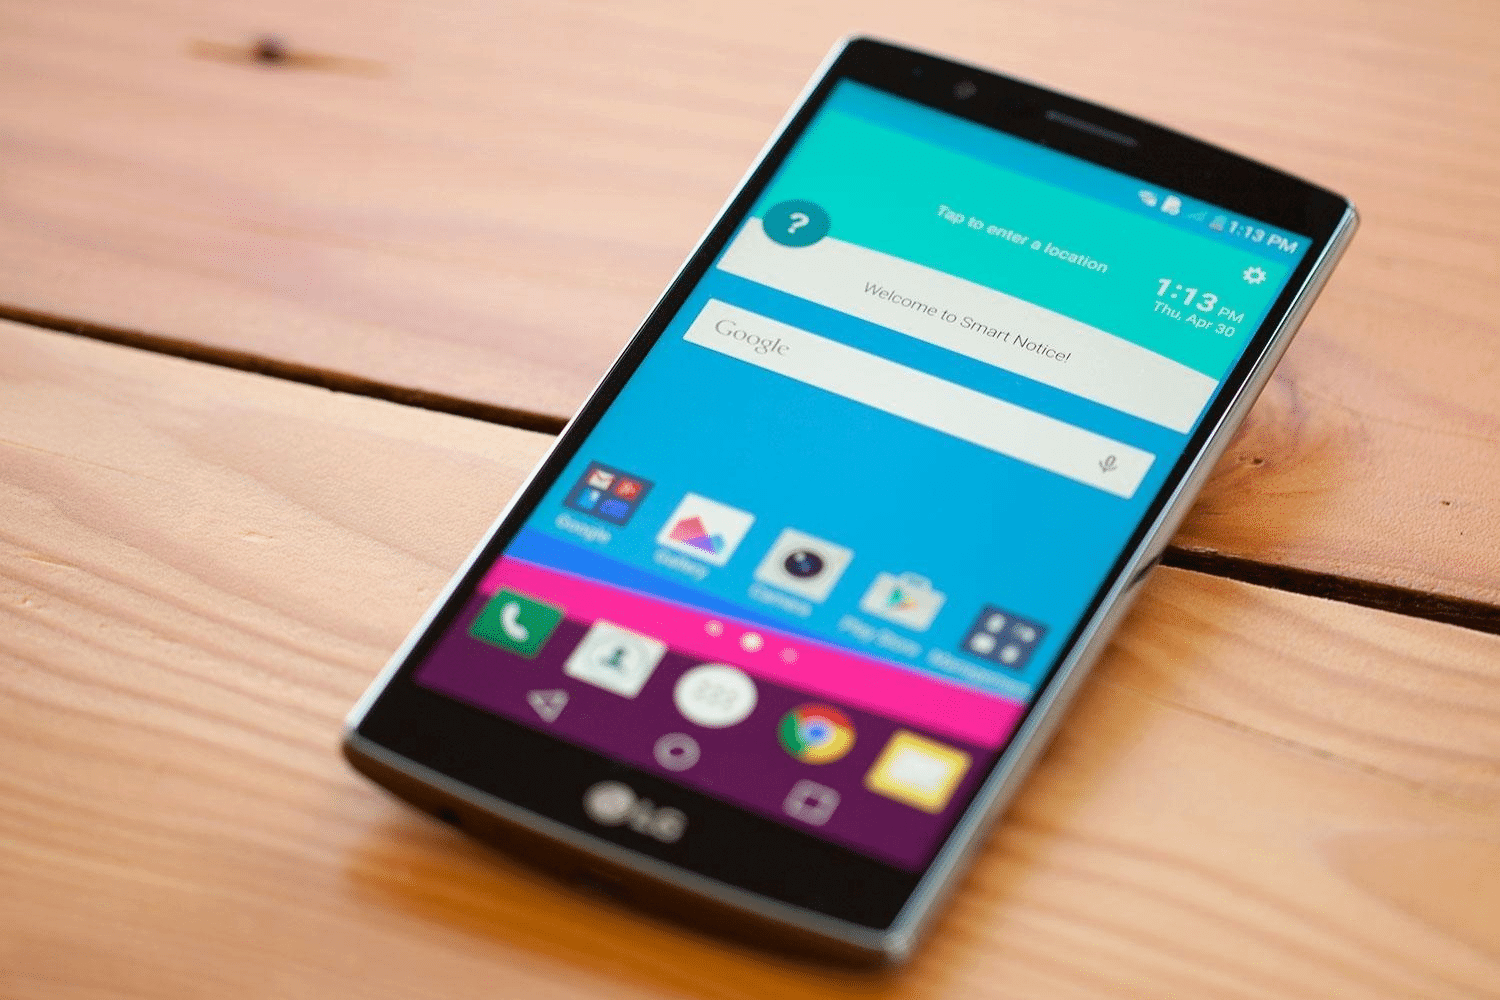 Install Lineage OS Android 7.1 Nougat Custom ROM on LG G4 H815 1